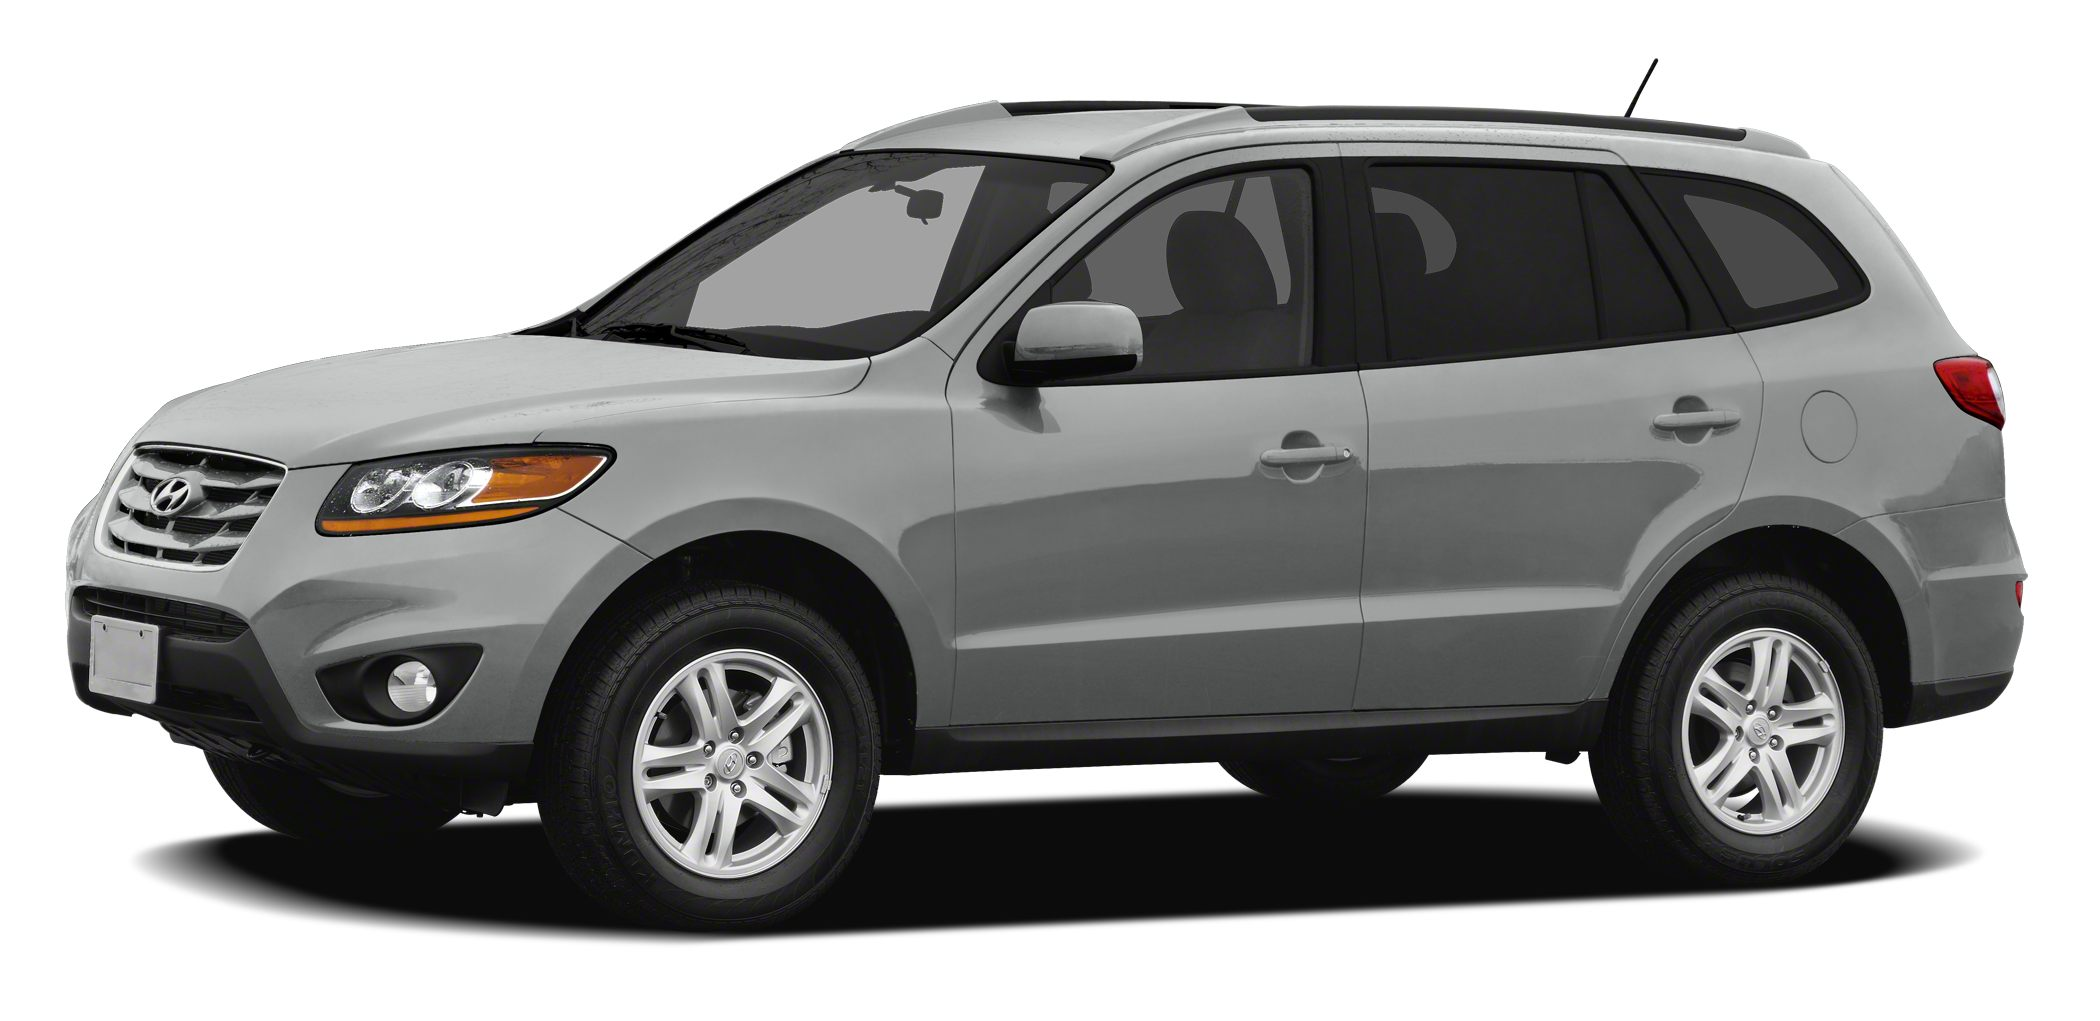 2012 Hyundai Santa Fe GLS ONE OWNER ZERO ACCIDENTS FLORIDA VEHICLE Very nice 2012 Hyundai San